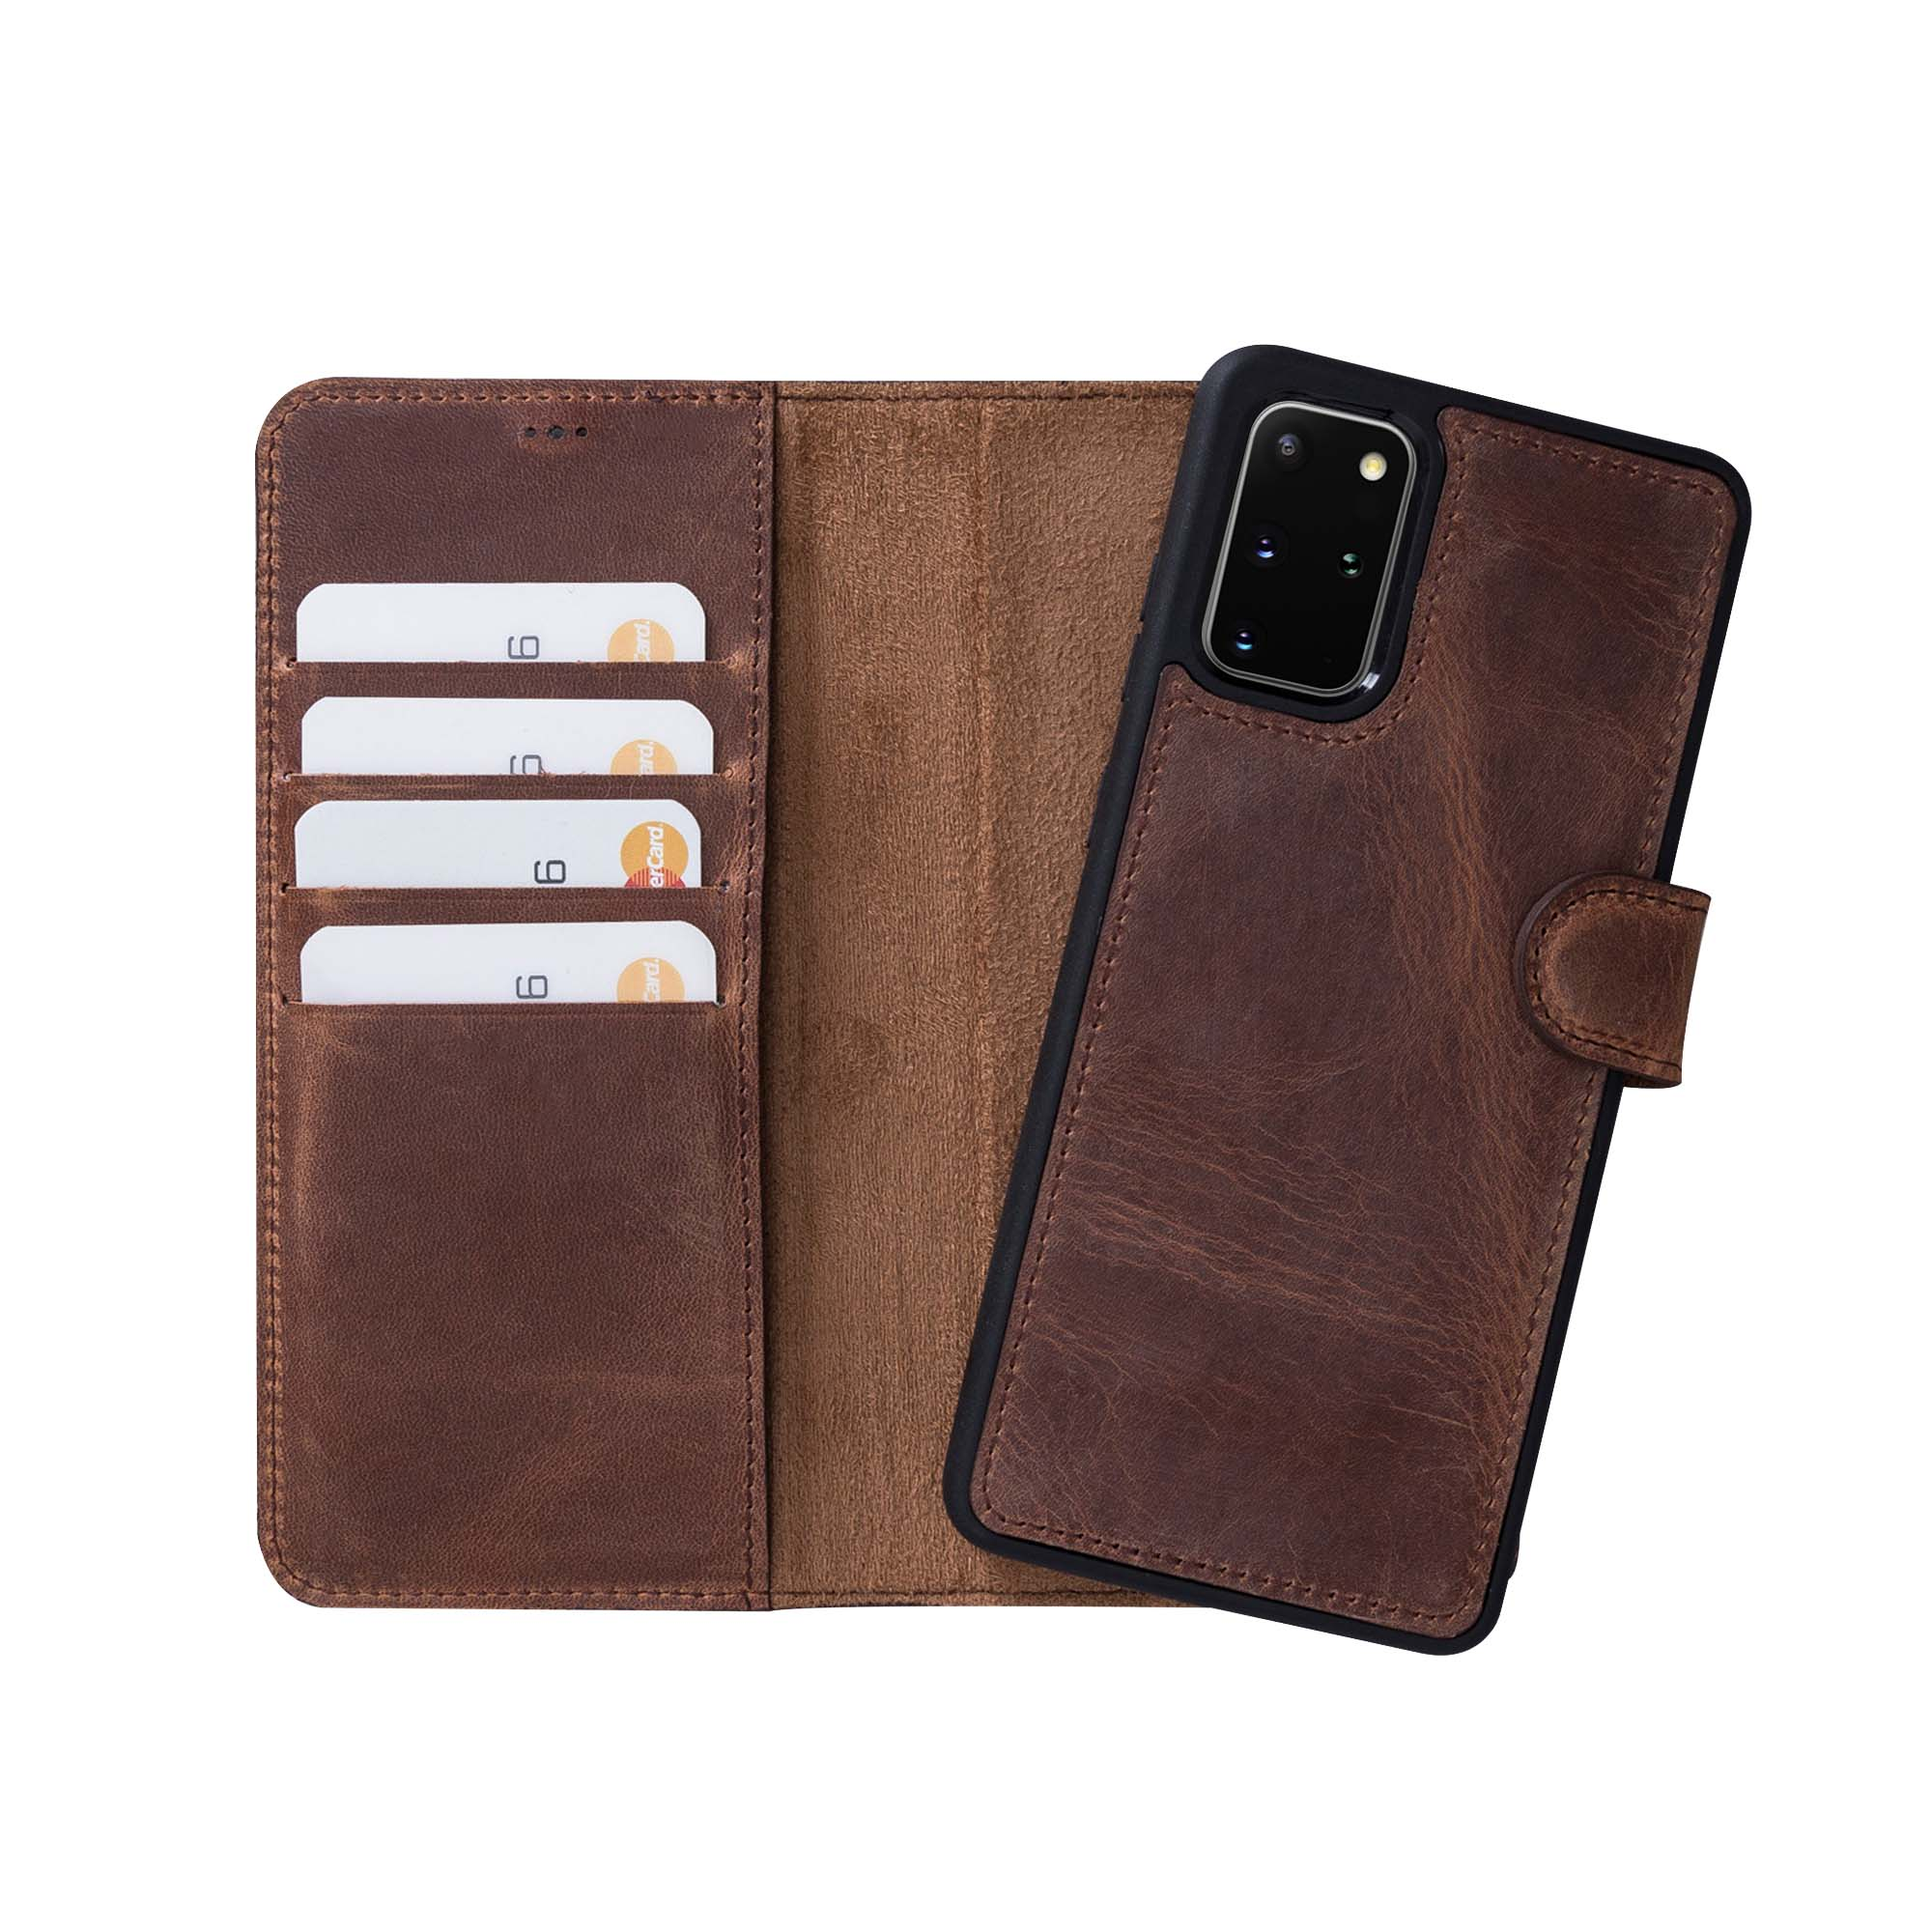 "Magic Magnetic Detachable Leather Wallet Case for Samsung Galaxy S20 Plus (6.7"") - BROWN"